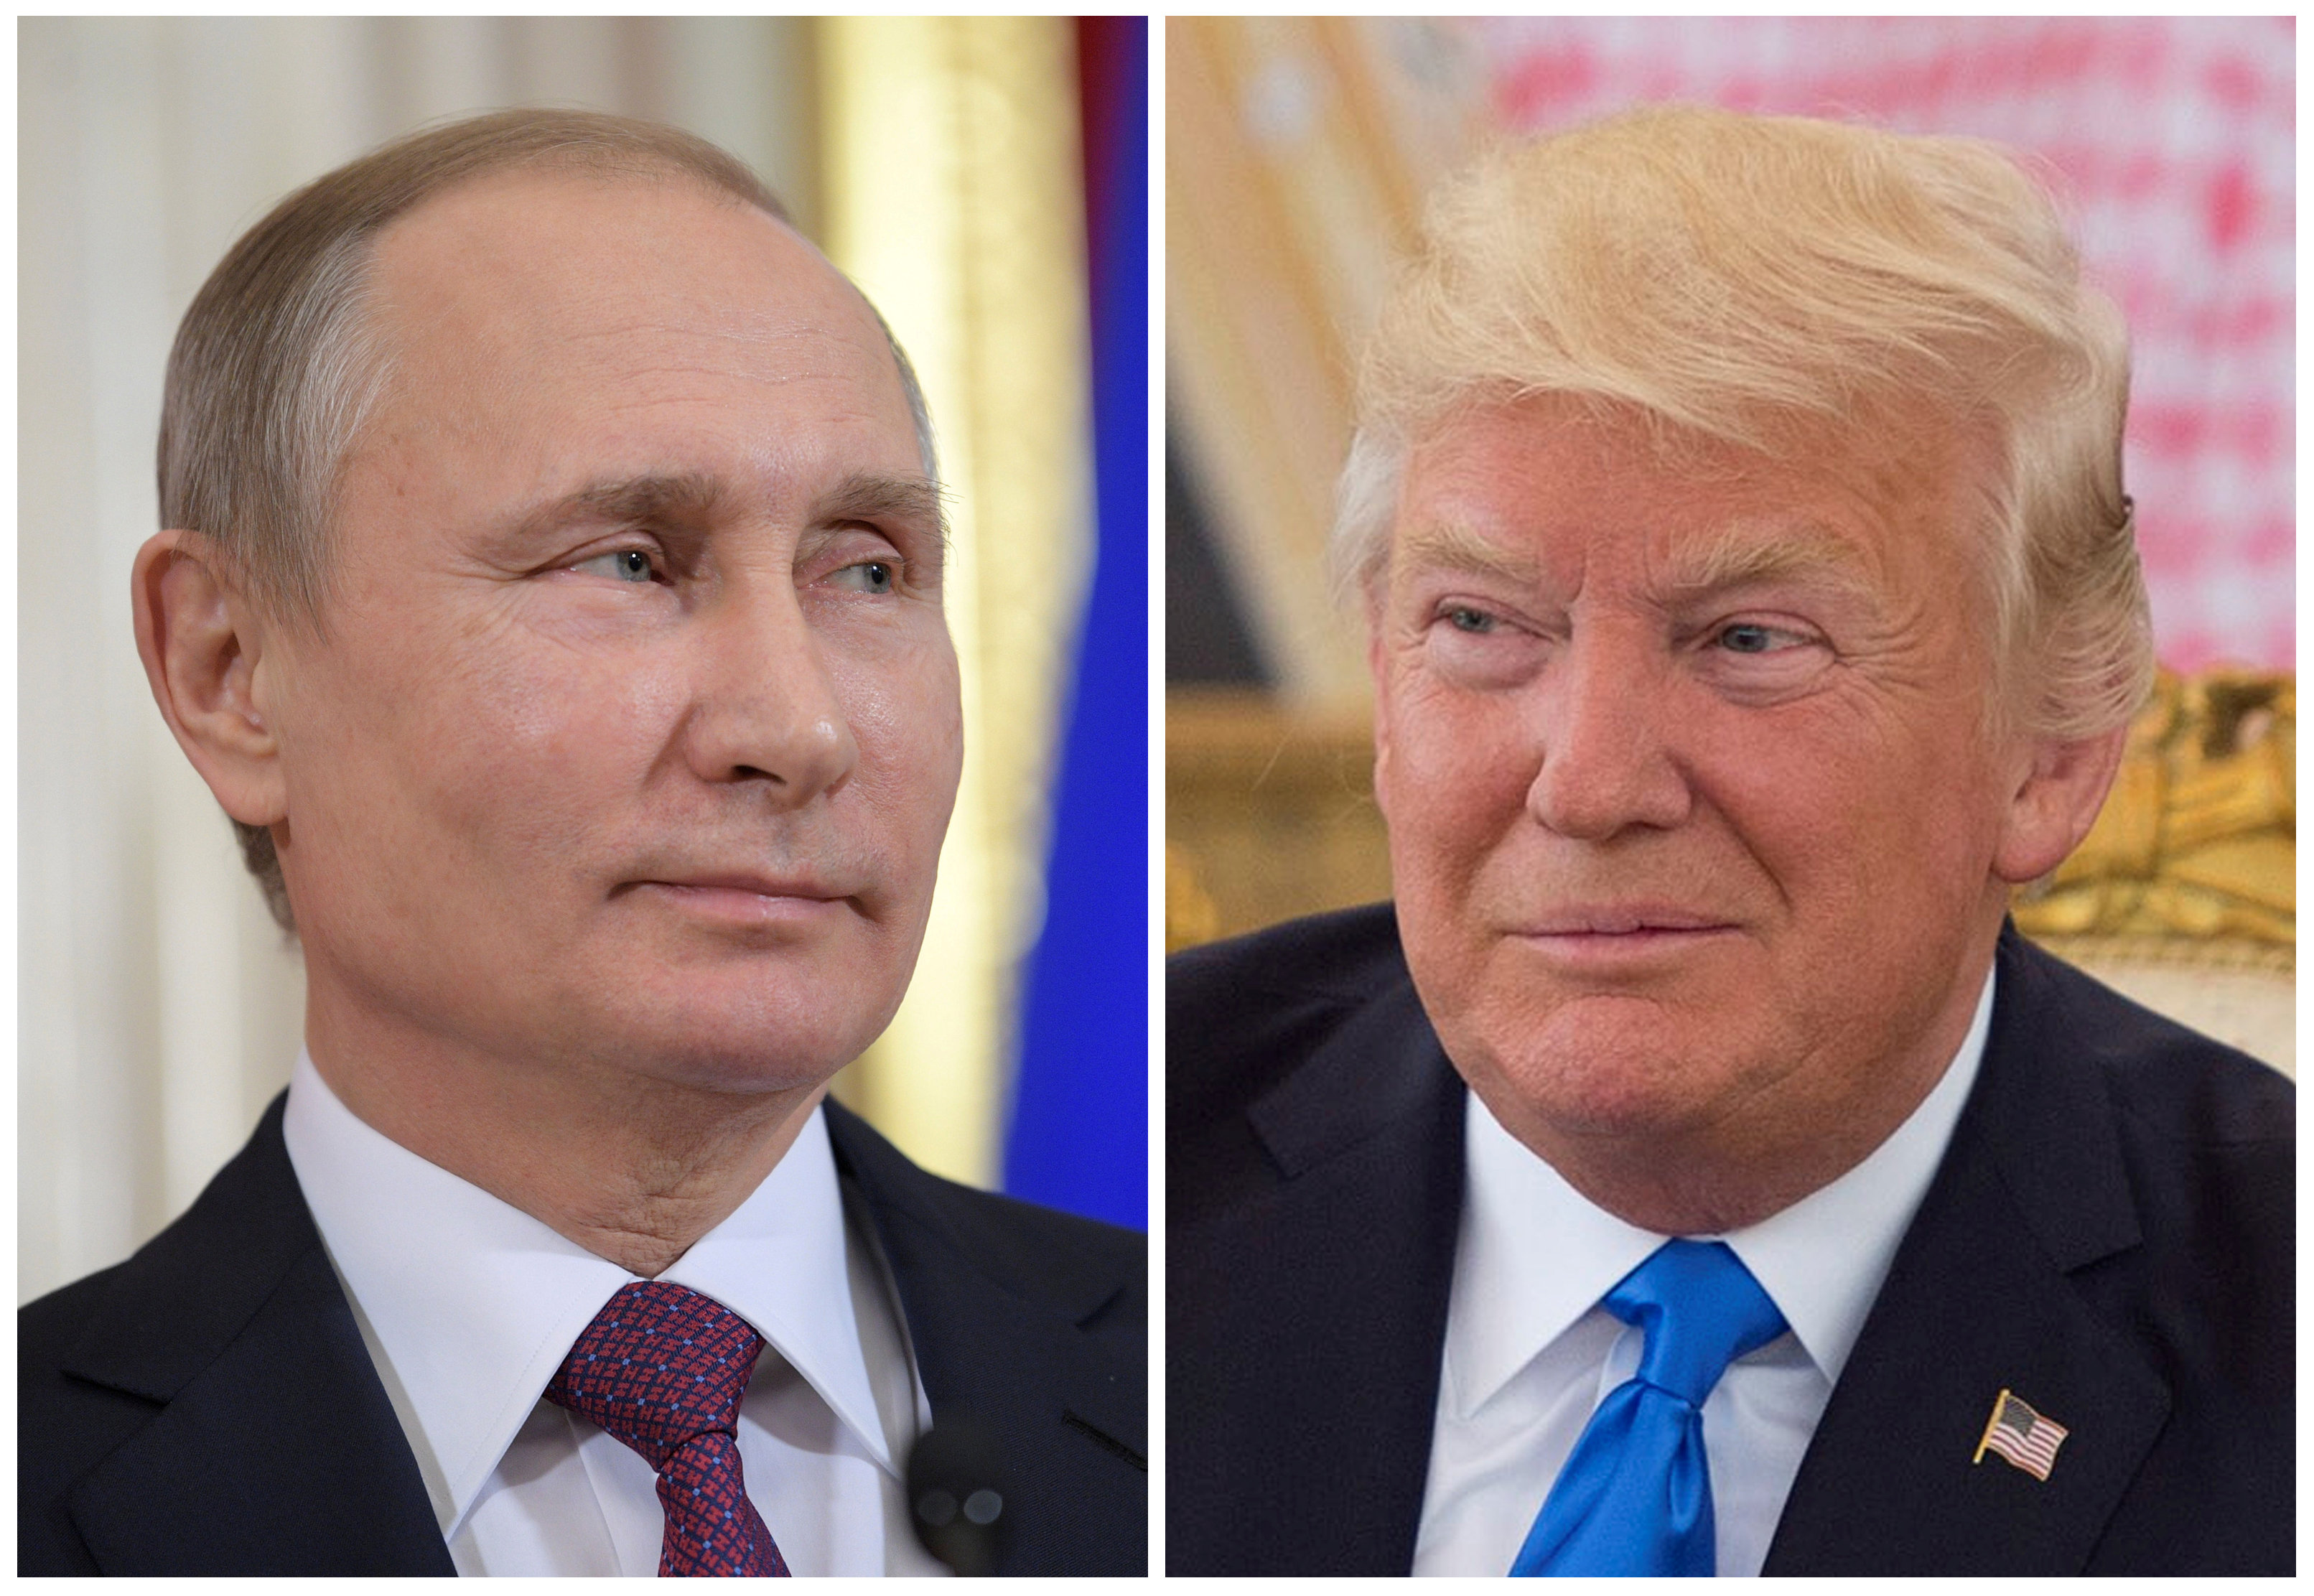 Trump to Meet Putin for First Time at G20 Summit